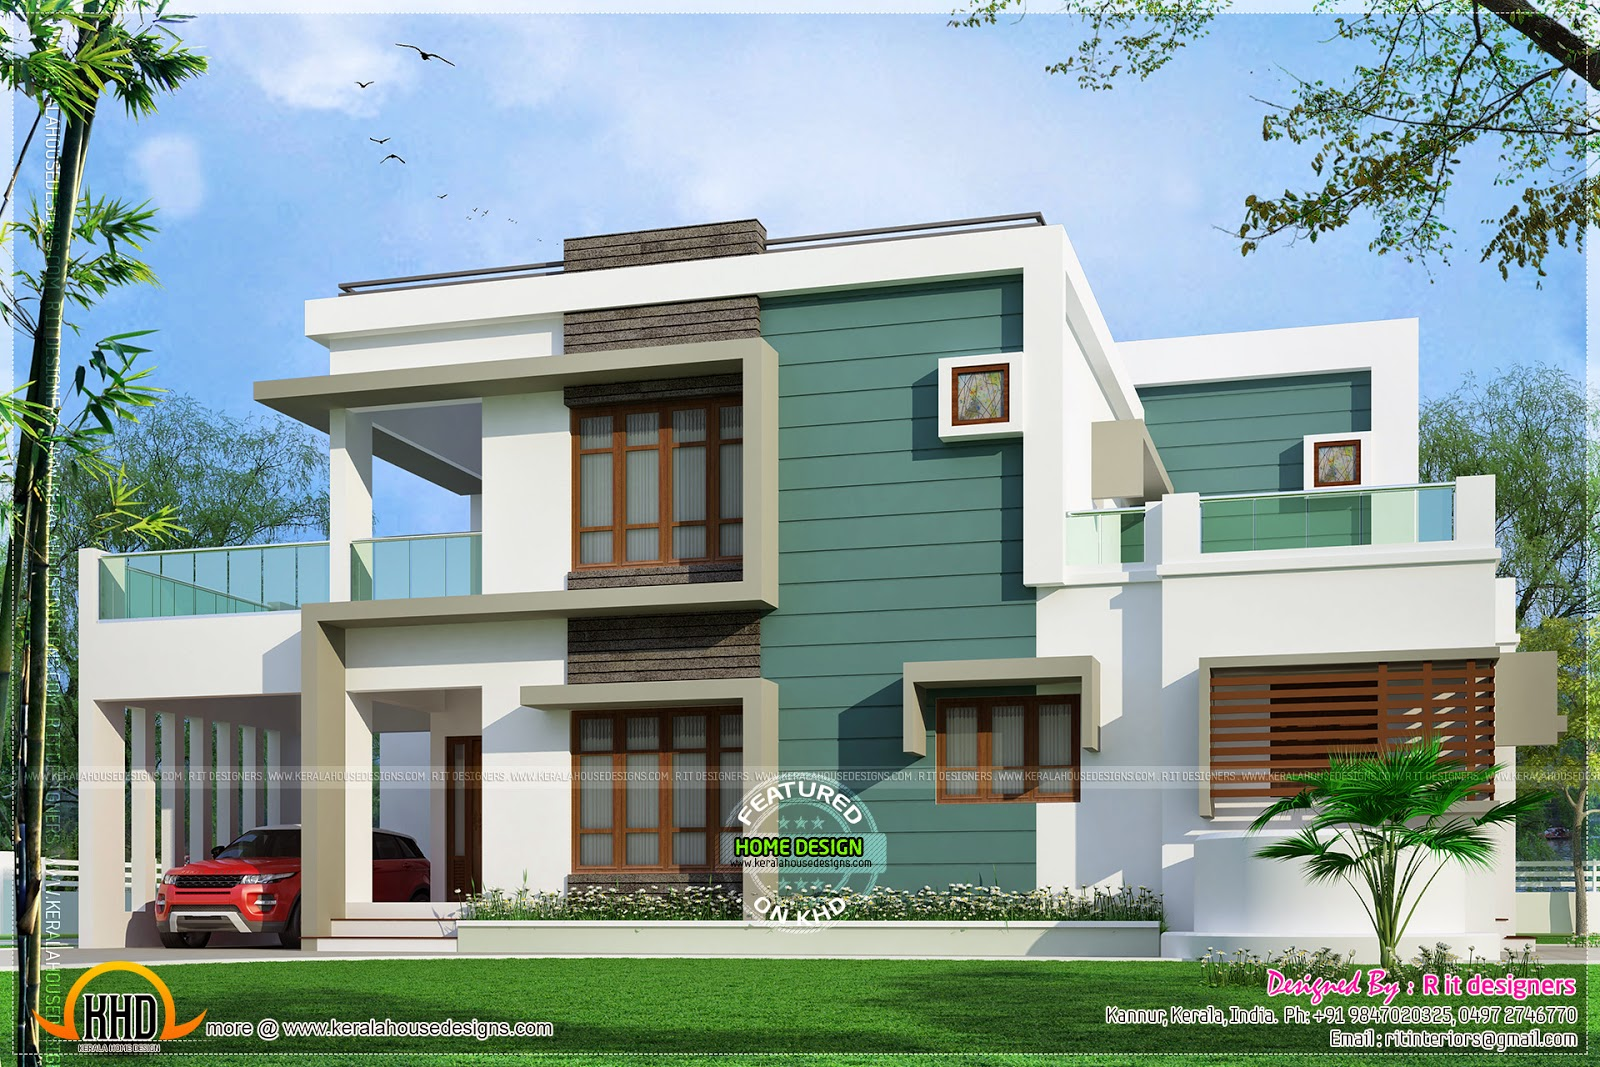 Kannur home design kerala home design and floor plans for Home floor designs image